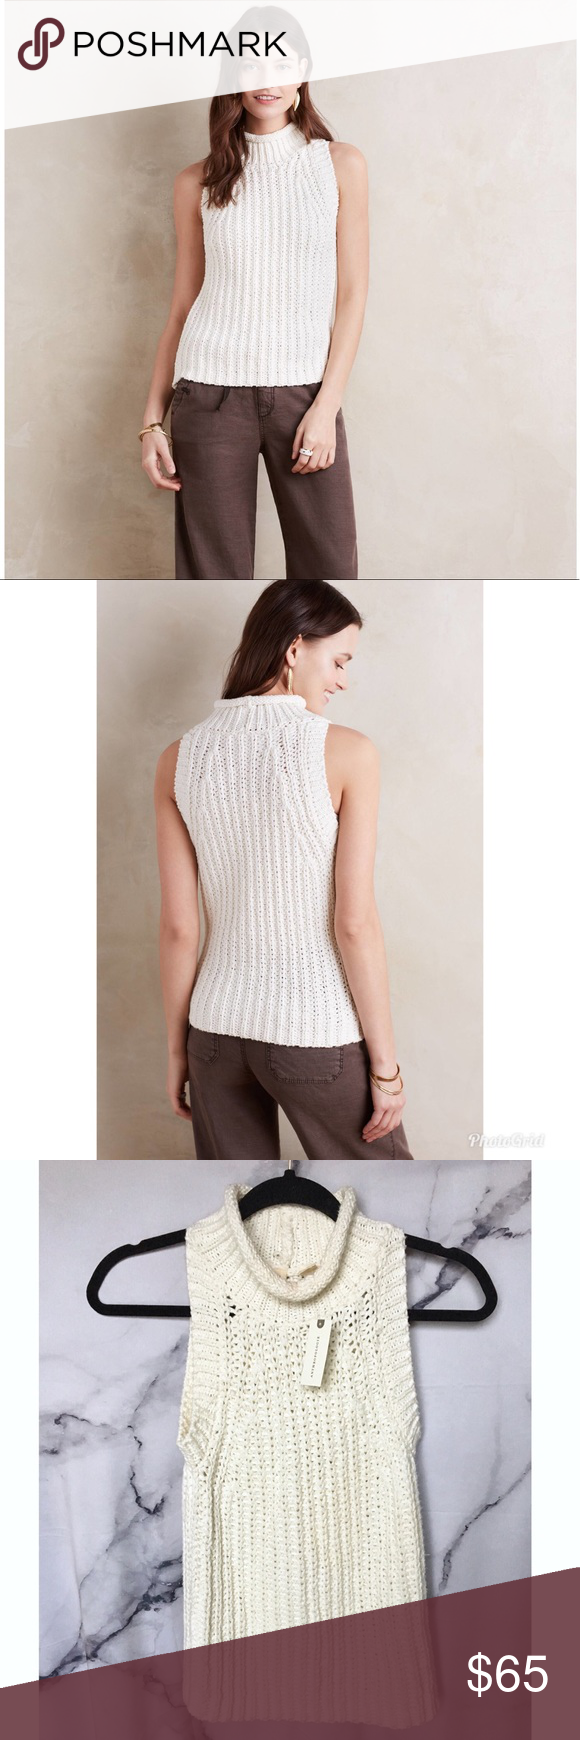 c0ddfa5c44 Anthropologie Moth Roll Neck Knit Tank Beautiful new Anthropologie sweater  with tags. Cotton/linen blend. Open to offers! Anthropologie Tops Tank Tops